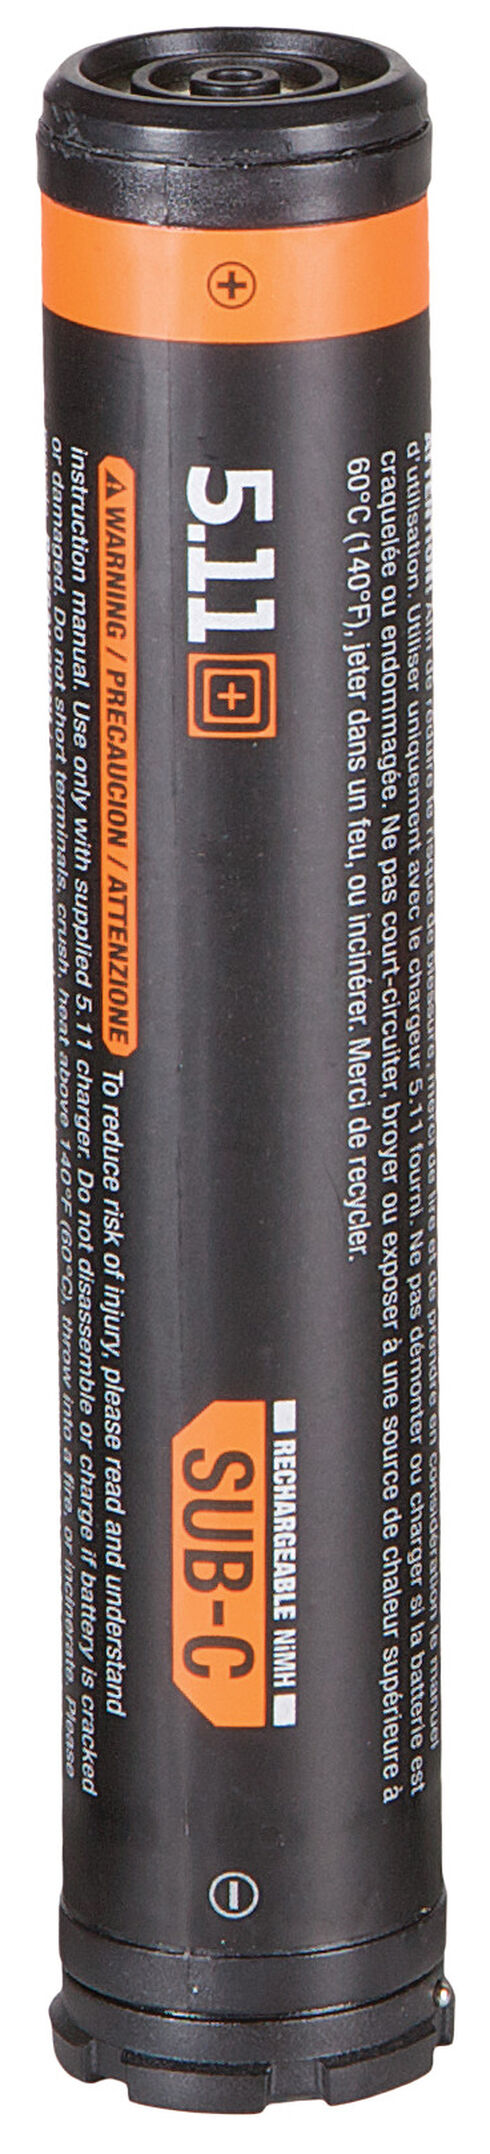 5.11 Tactical TPT R5 NIMH Sub-C Rechargeable Battery, Black, hi-res